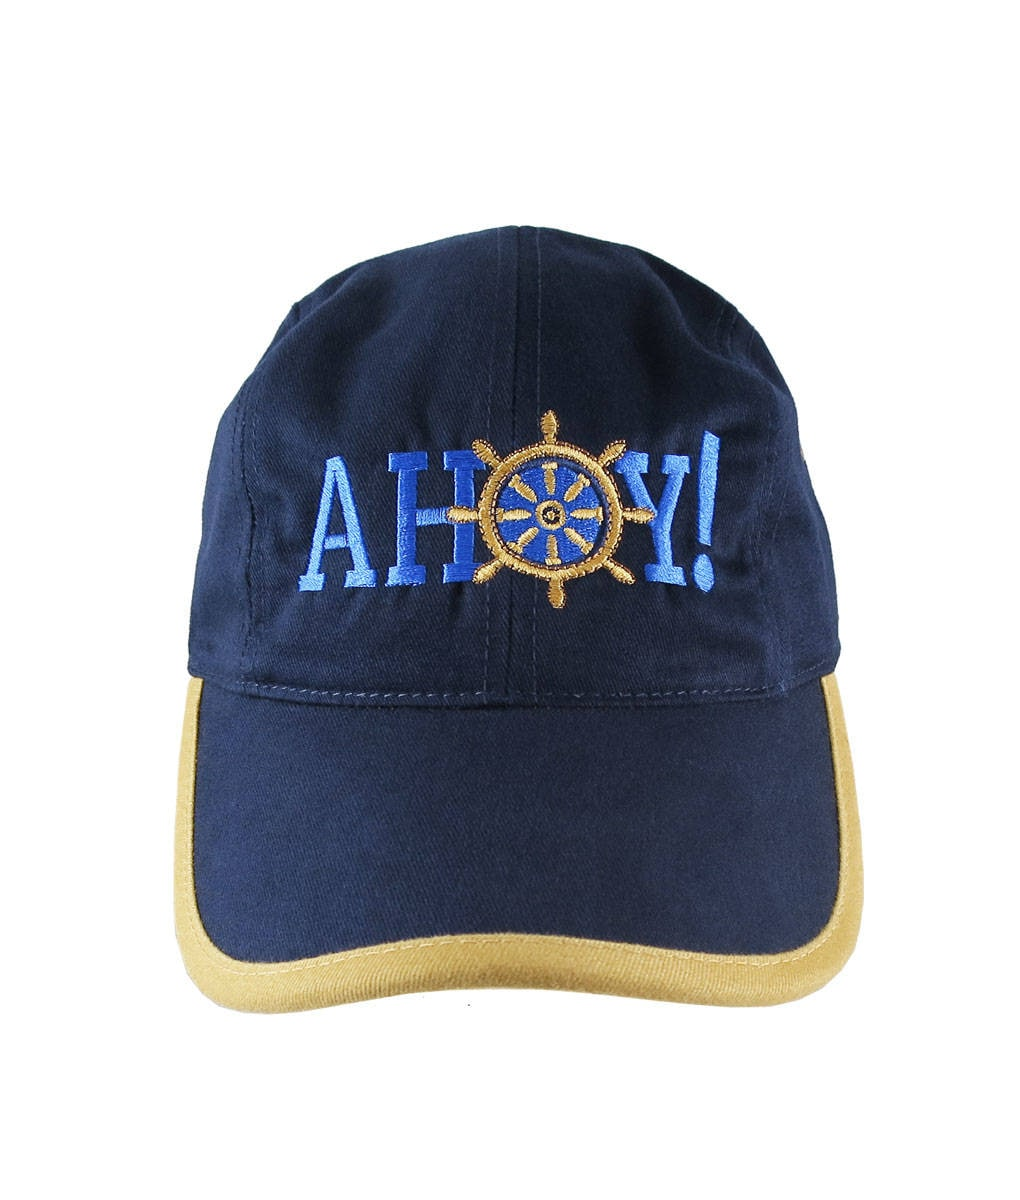 7c272e1998a Nautical Boat Wheel Greeting Embroidery on a Polo Style 5 Panel Adjustable  Mango and Navy Unstructured Cap for the Boating Enthusiast